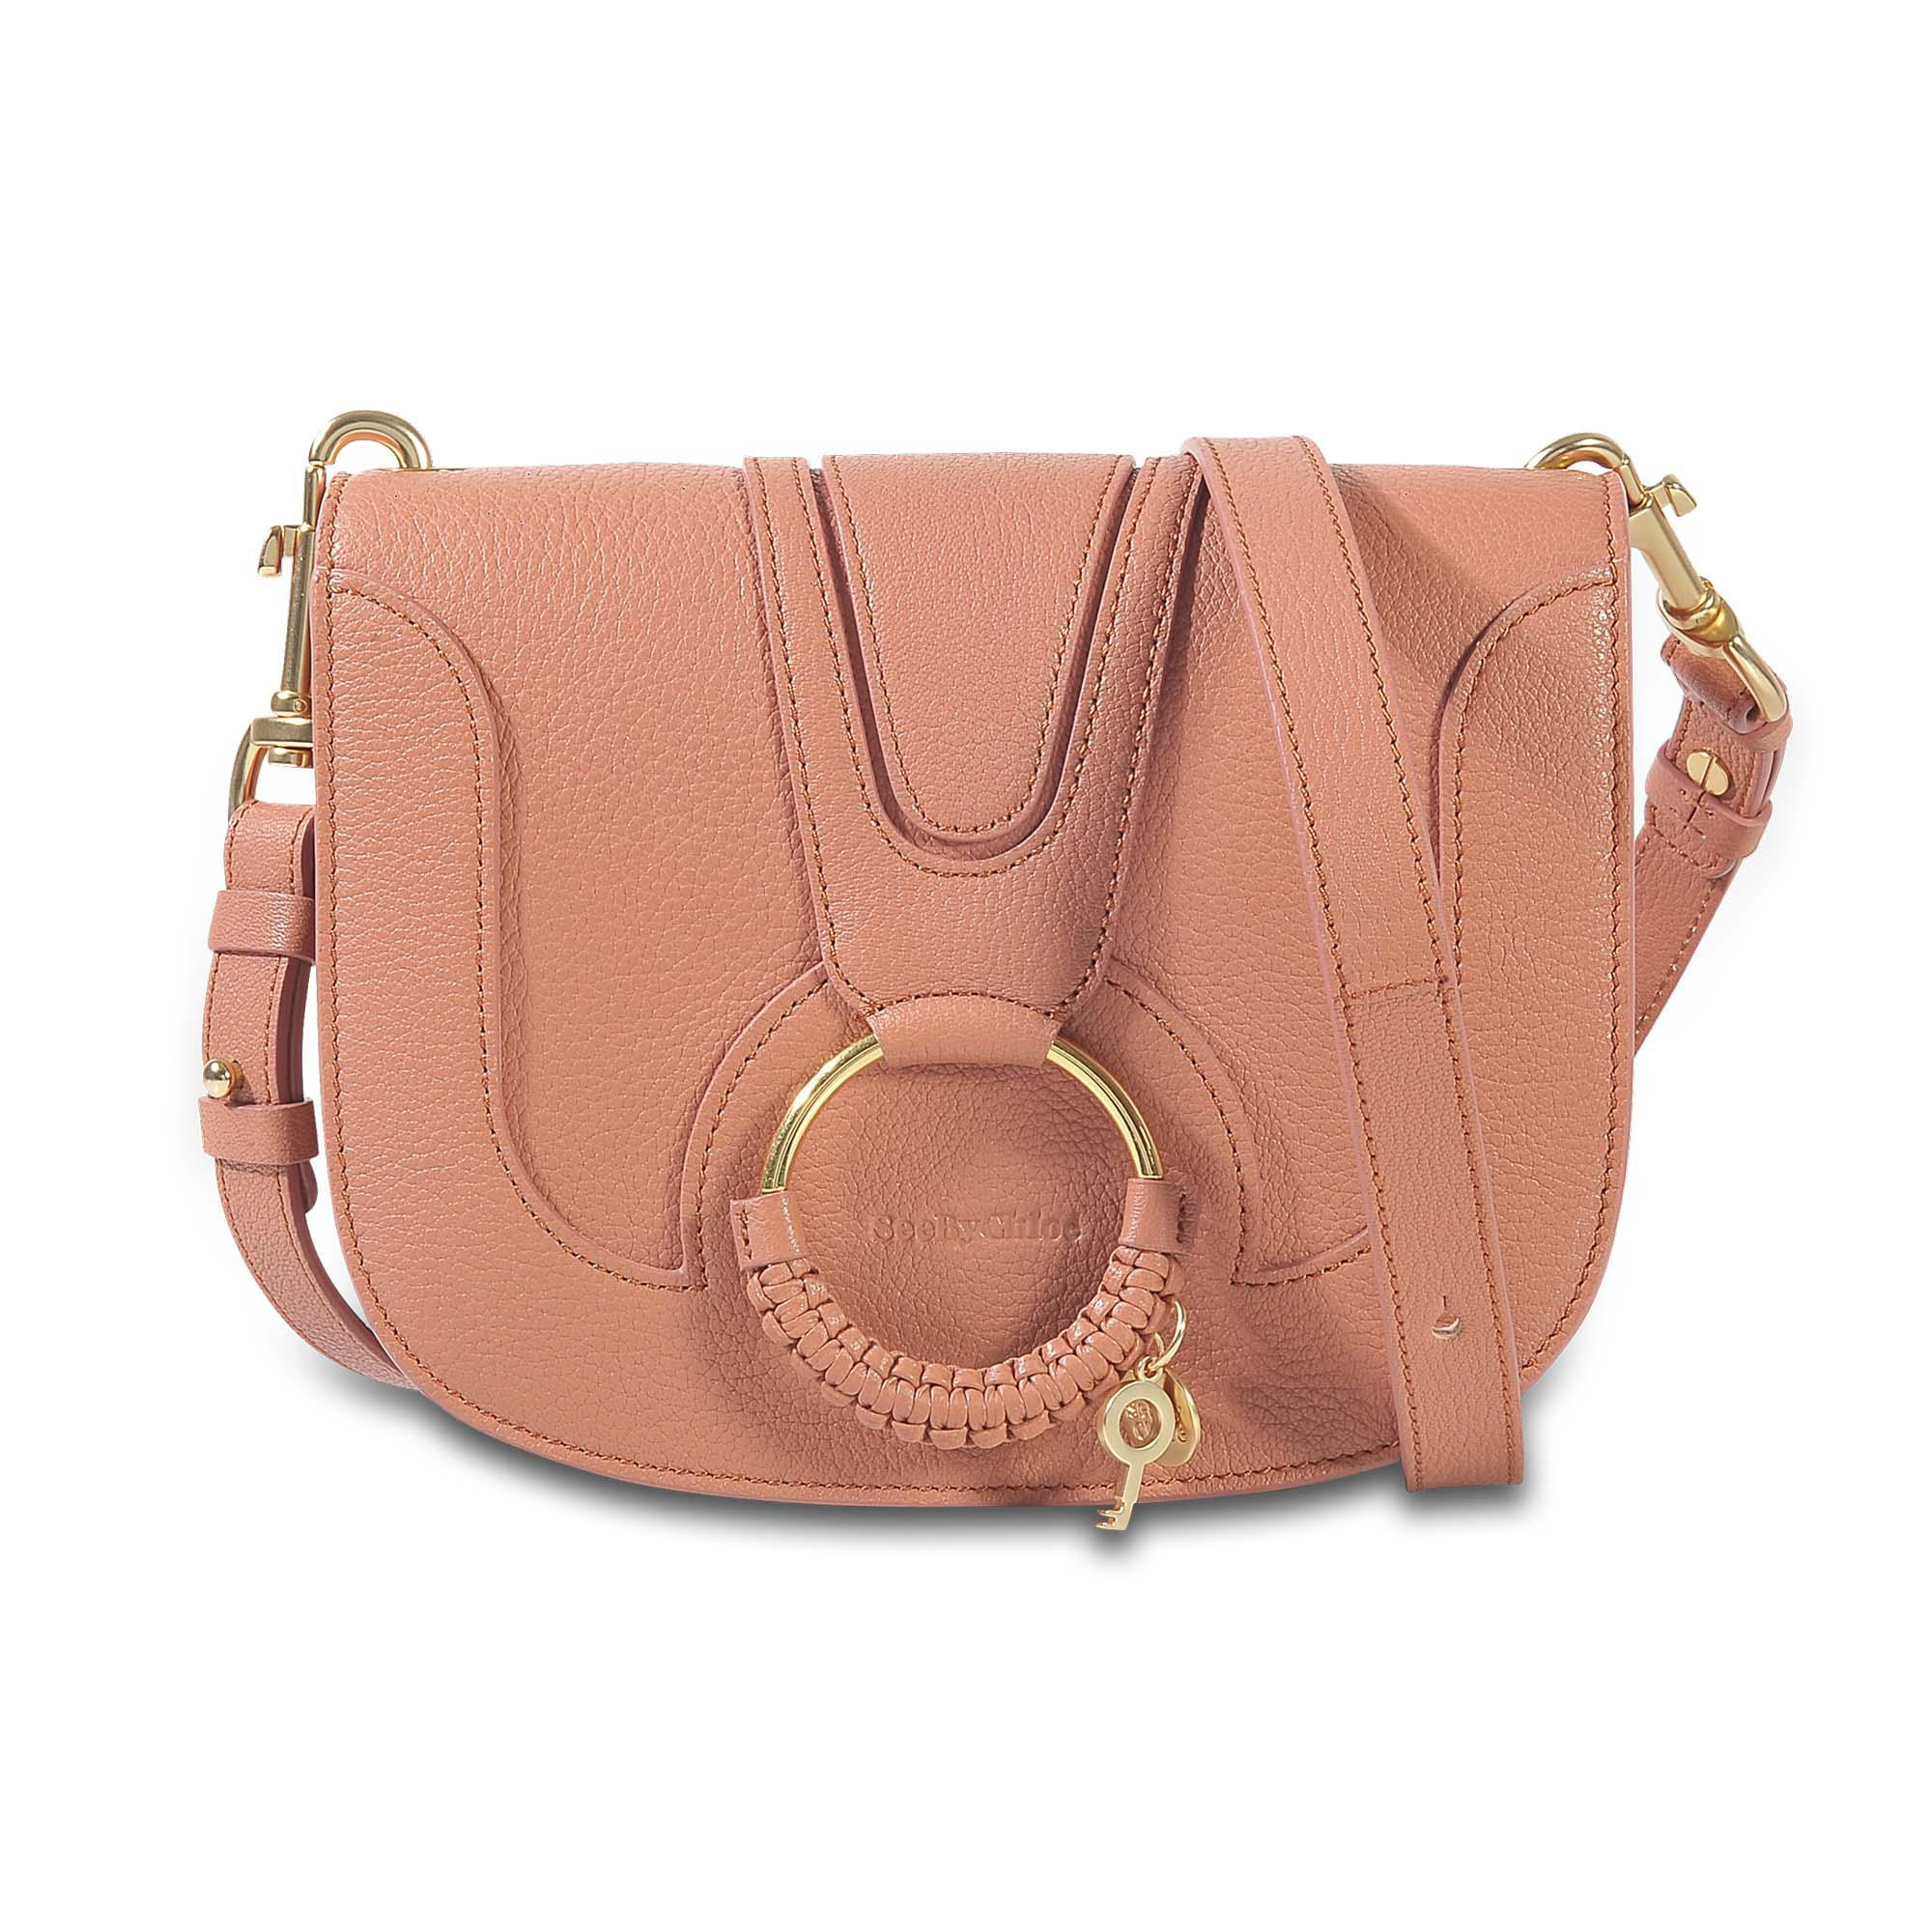 Hana shoulder bag - Brown See By Chloé uAKi1eHm